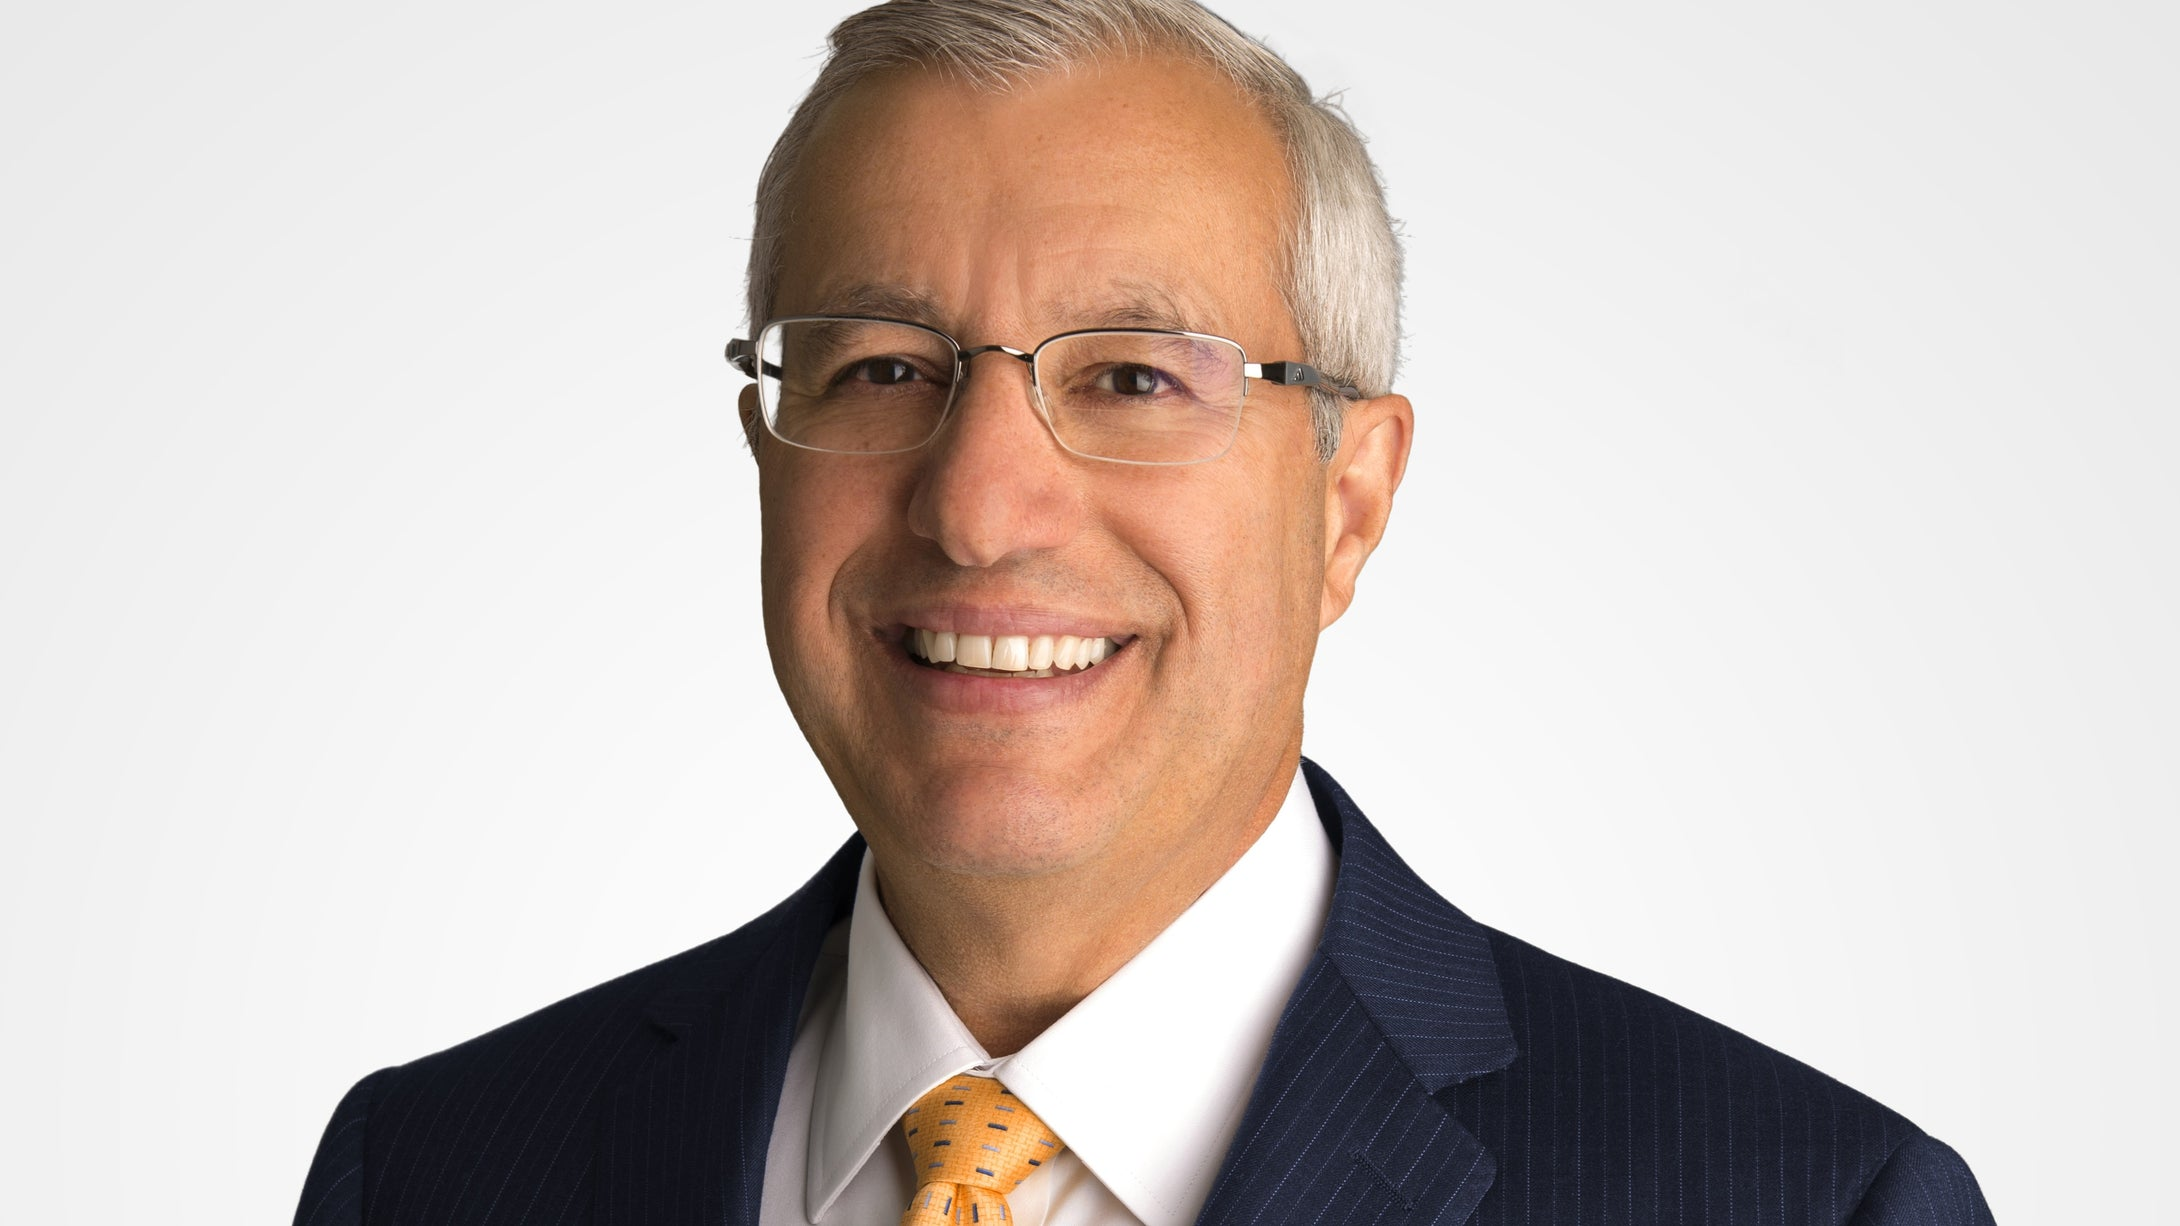 April 25 - Vic Fedeli on the 2019 Ontario Budget